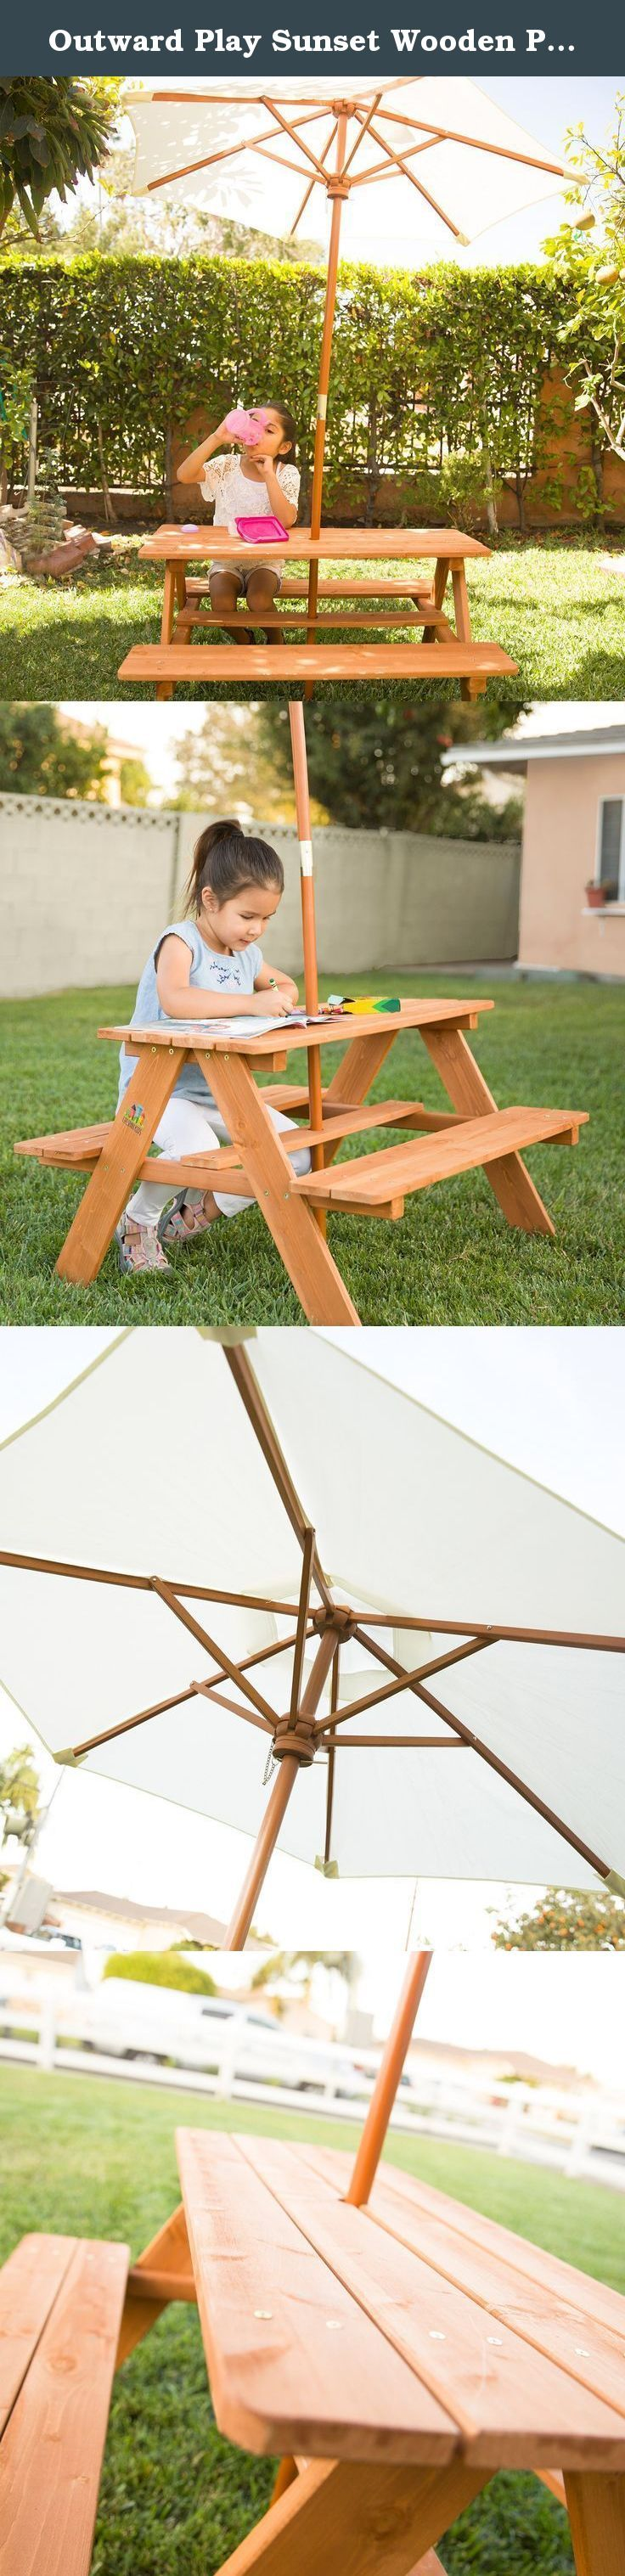 Outward Play Sunset Wooden Picnic Table with Umbrella. Ideal for relaxing after a hard day in the sandbox, the Sunset Picnic Table from Outward Play is designed for kids between 3 to 9, and it features a UV-protected umbrella to keep them cool and in the shade. The Sunset picnic table with two benches is made with high-quality timber that's dried at a high temperature for long durability outside, and it's stained to be resistant to wood rot and insect damage. The umbrella can be removed…